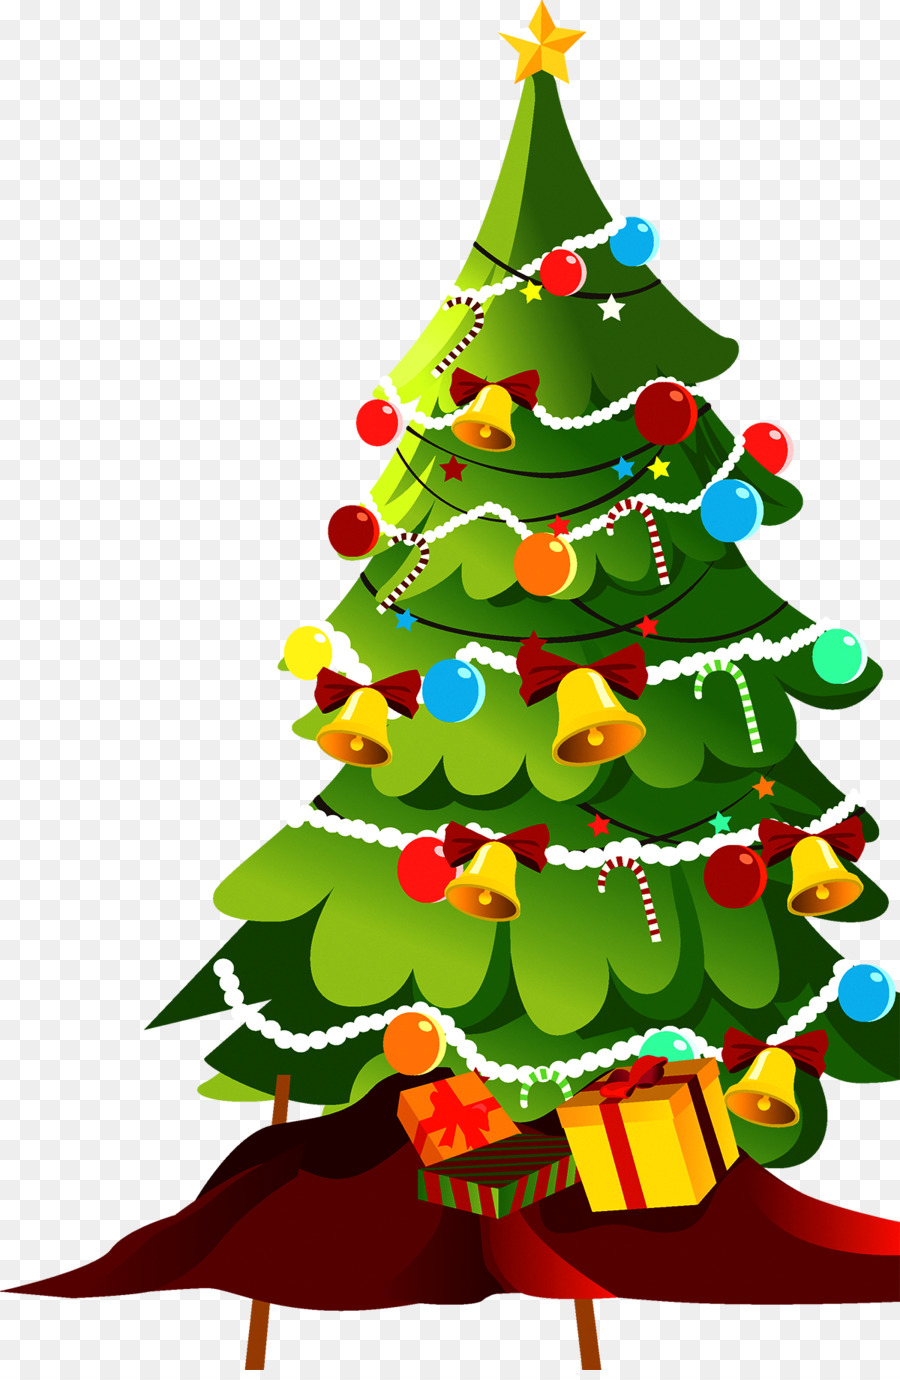 Christmas Tree Cartoon This is a set of detailed vector christmas tree illustrations: christmas tree cartoon